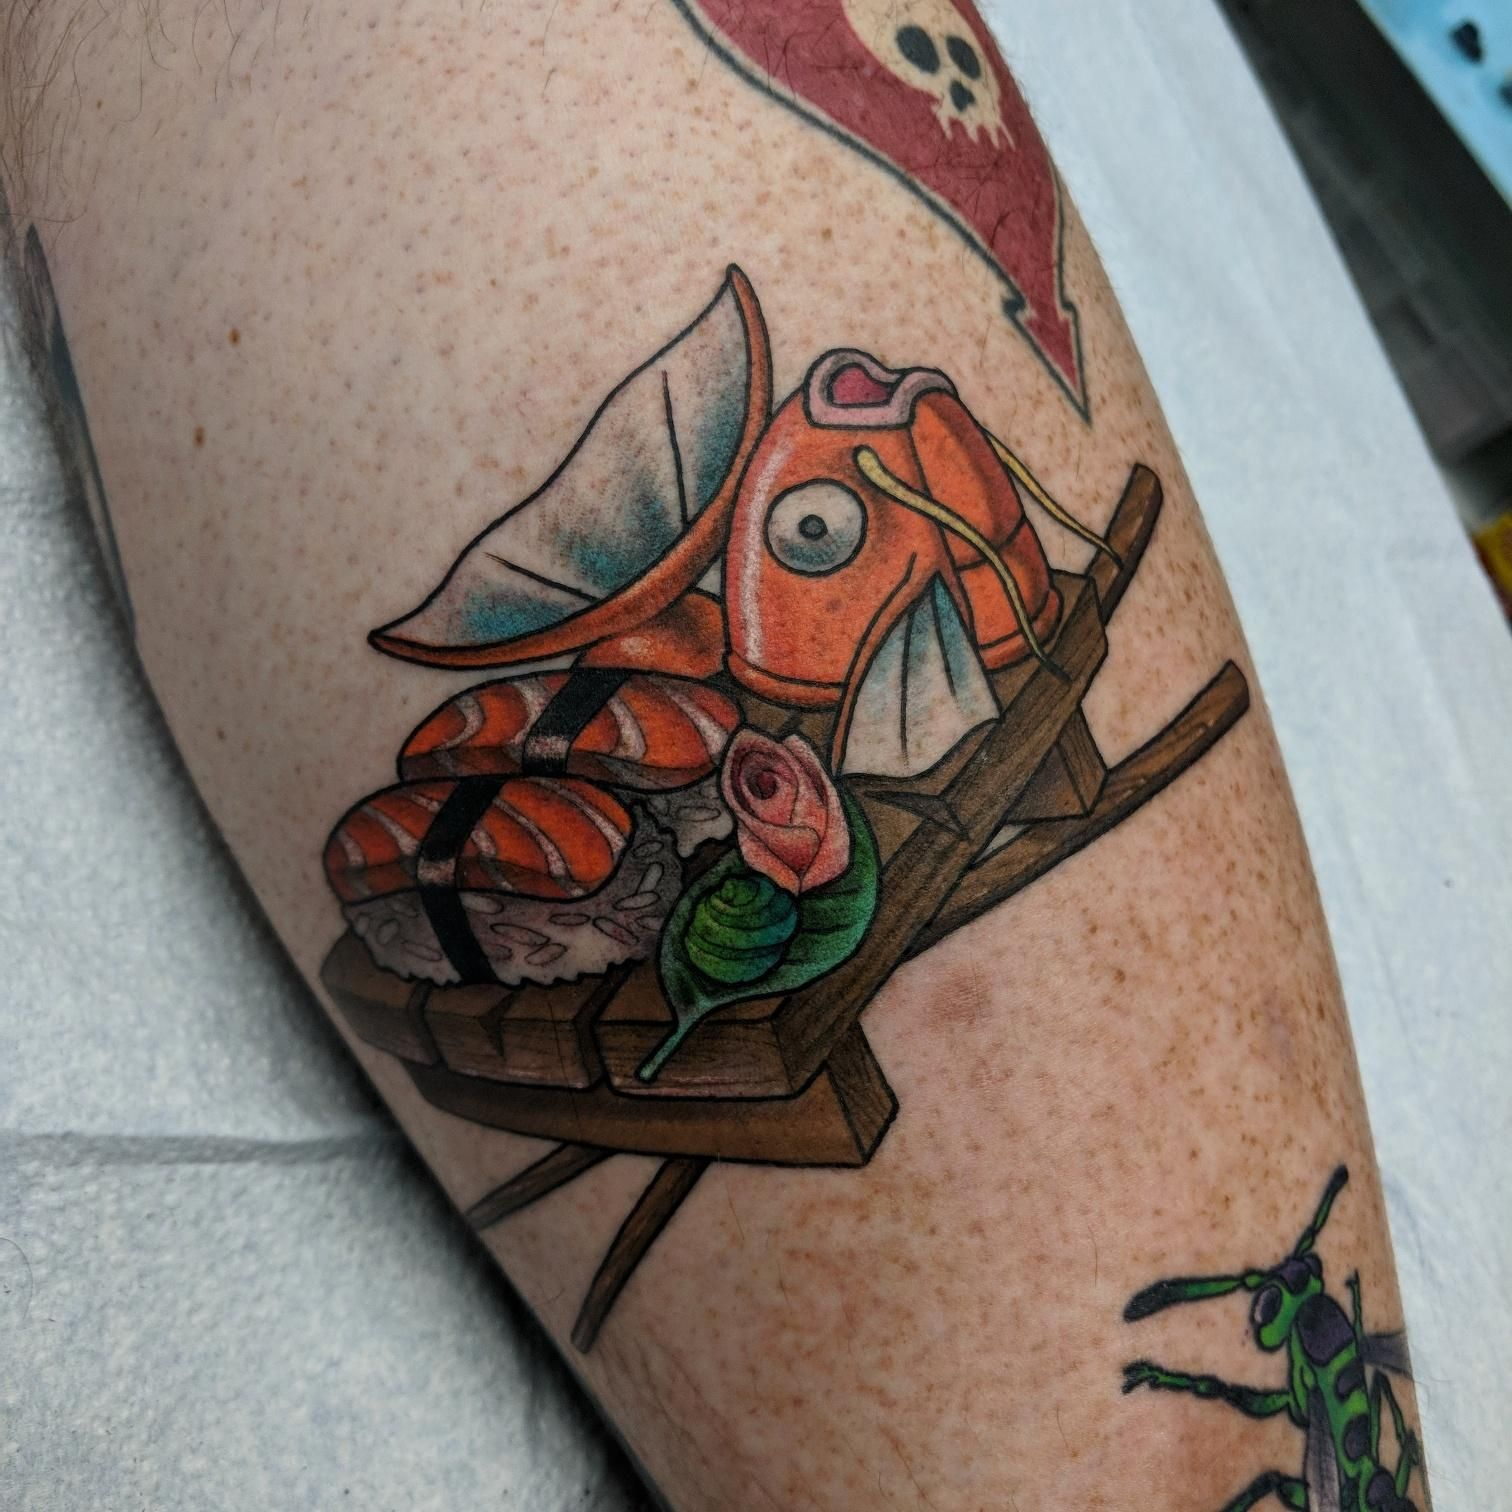 Black Sparrow Tattoo Pensacola Fl - Year of Clean Water